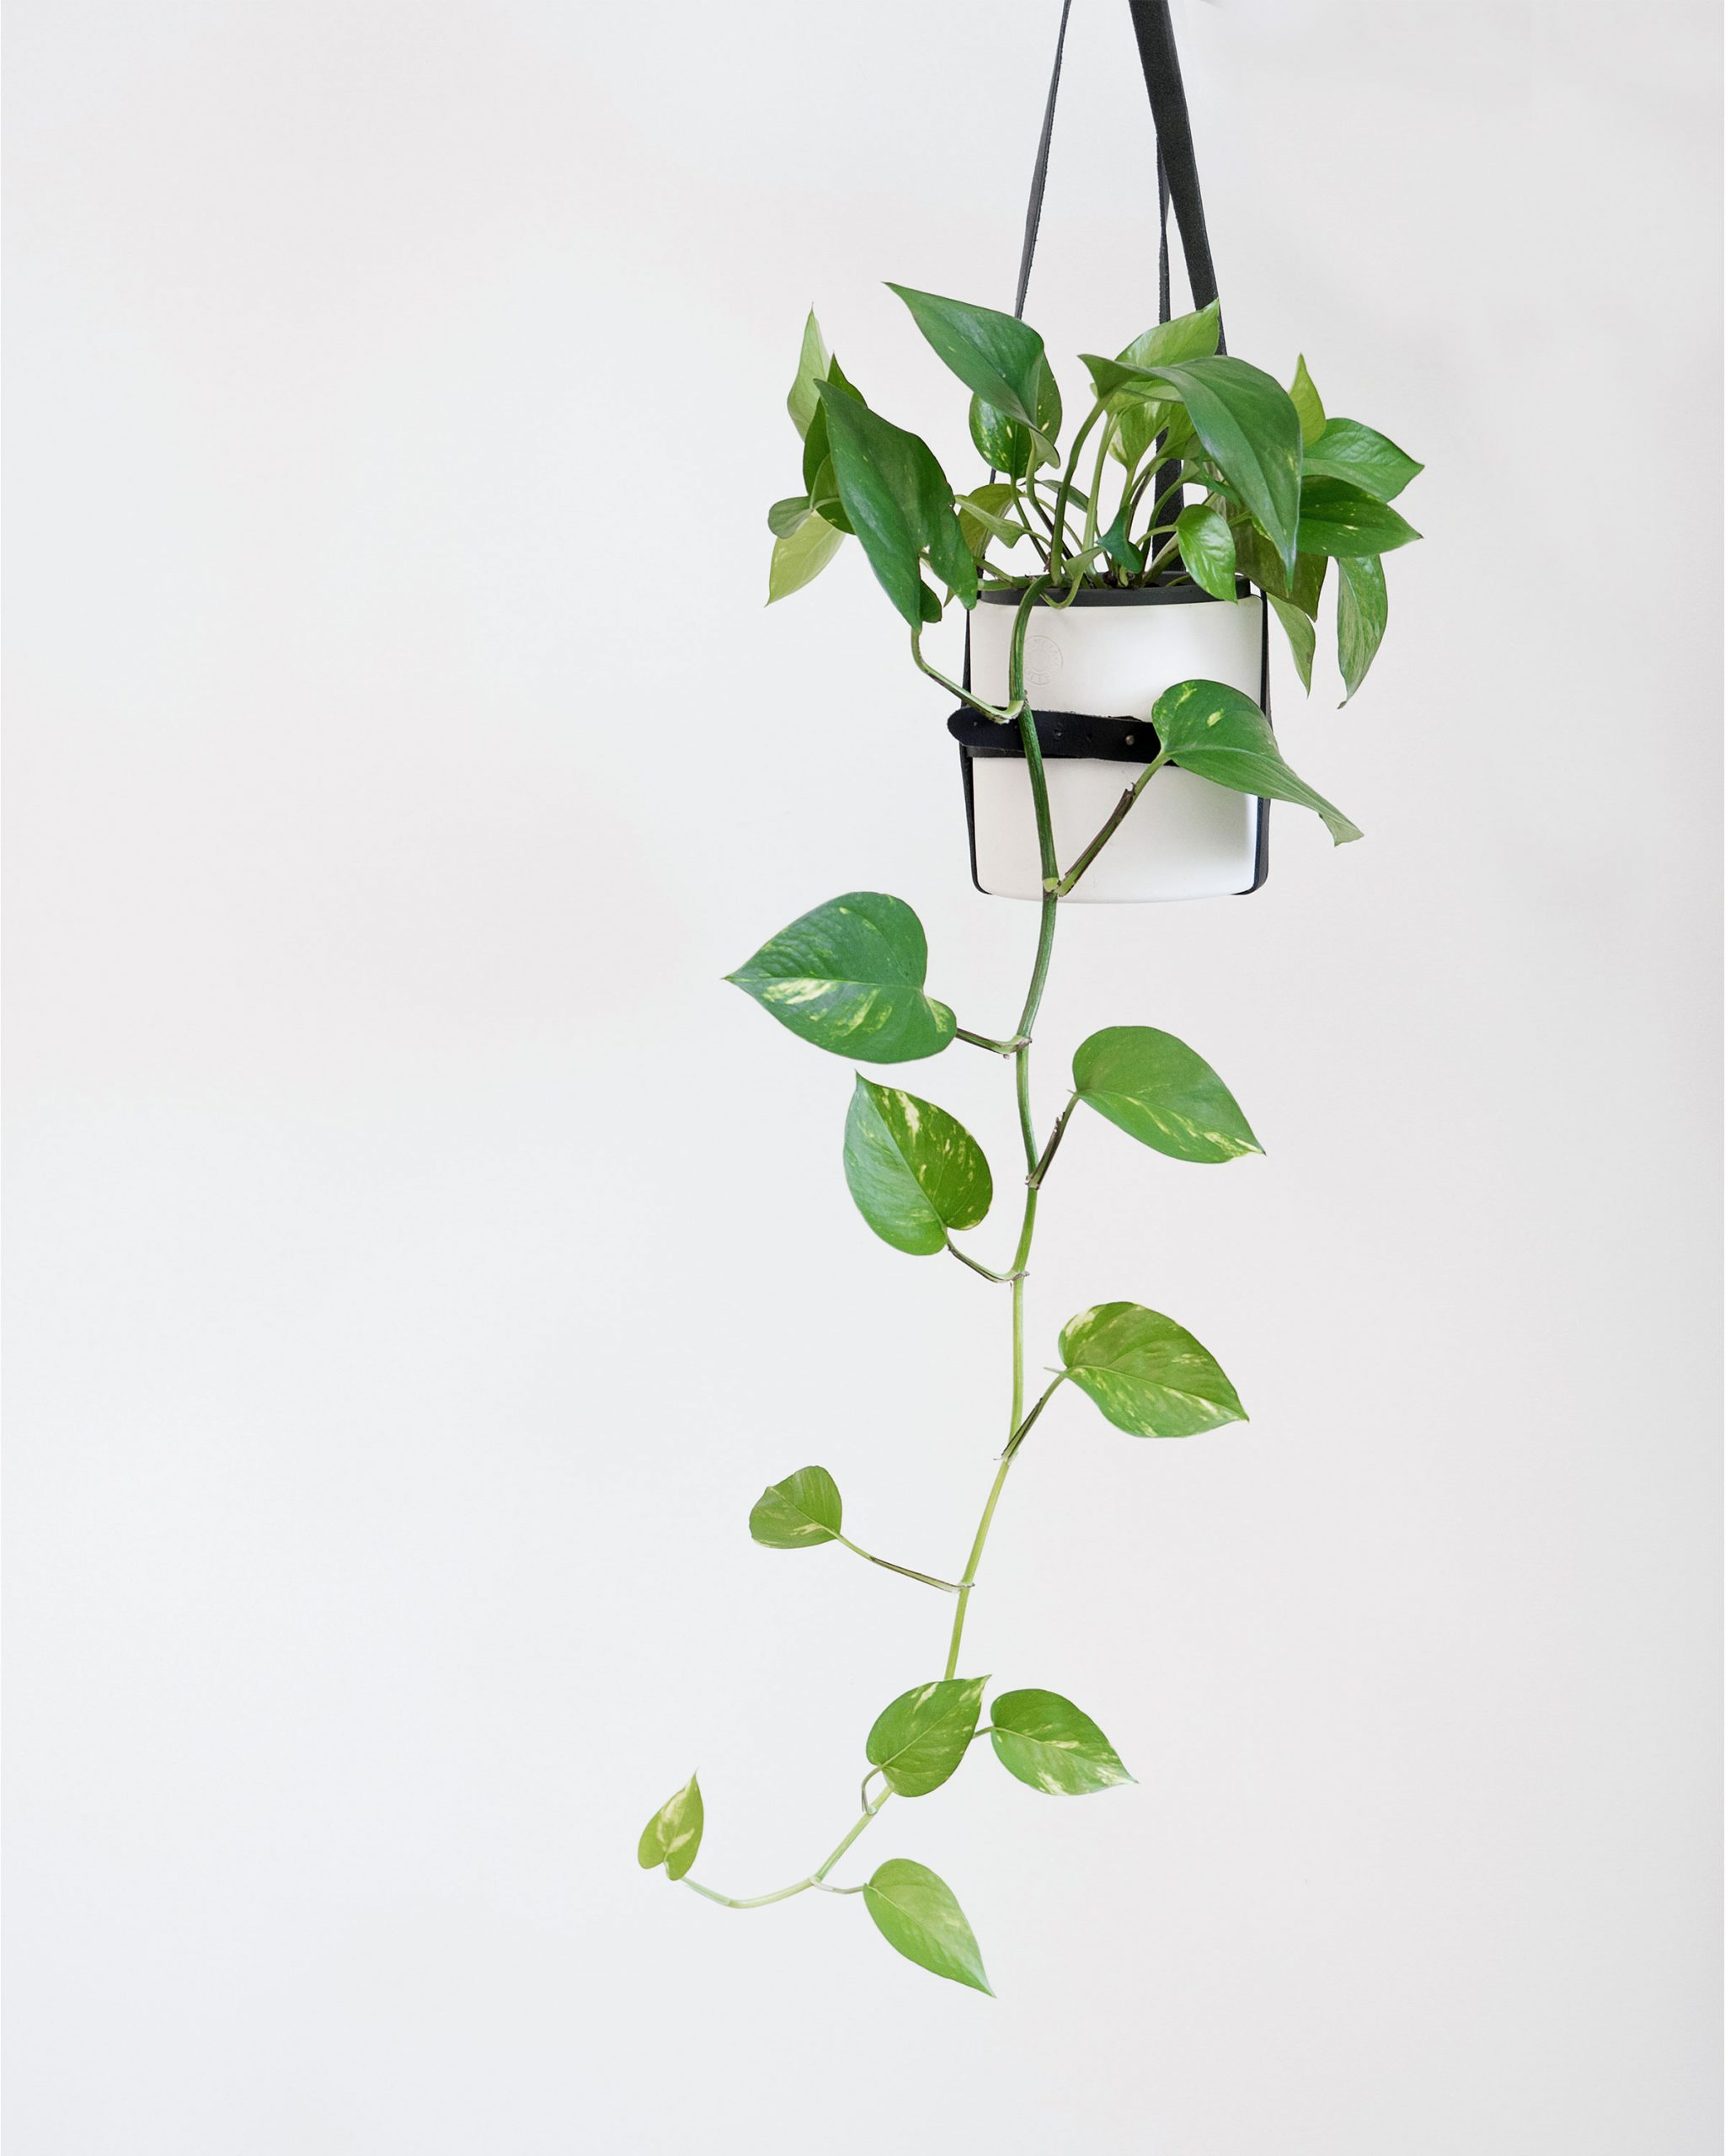 Guide To Indoor Plants - Epipremnum Aureum - Devil's Ivy